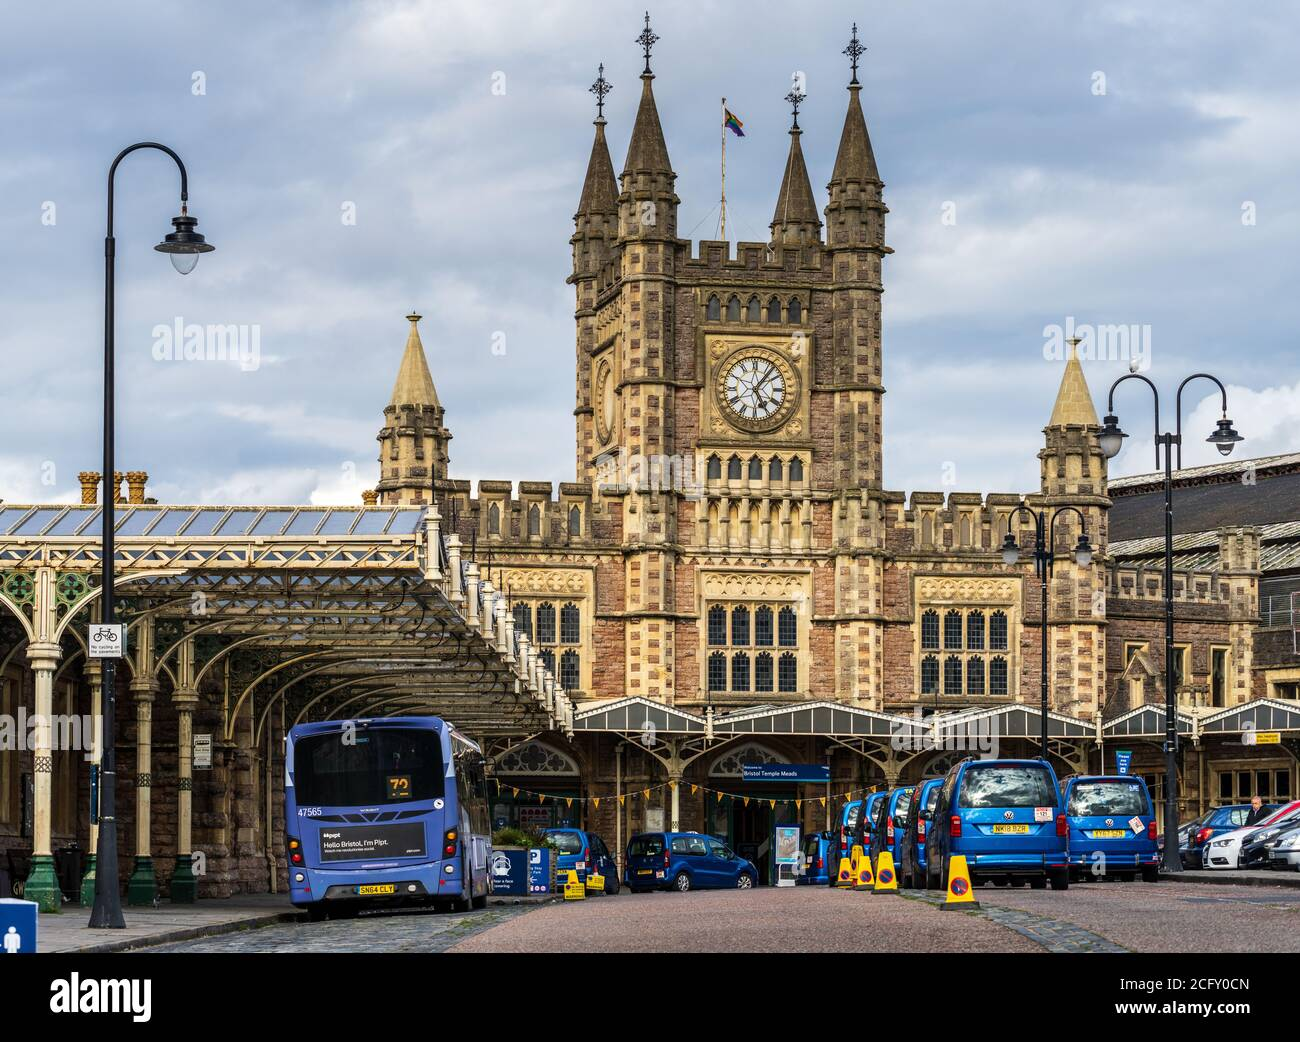 Bristol Temple Meads Station - Taxis outside Bristol Temple Meads Railway Station.  Opened 1840, design engineer Isambard Kingdom Brunel. Grade I. Stock Photo